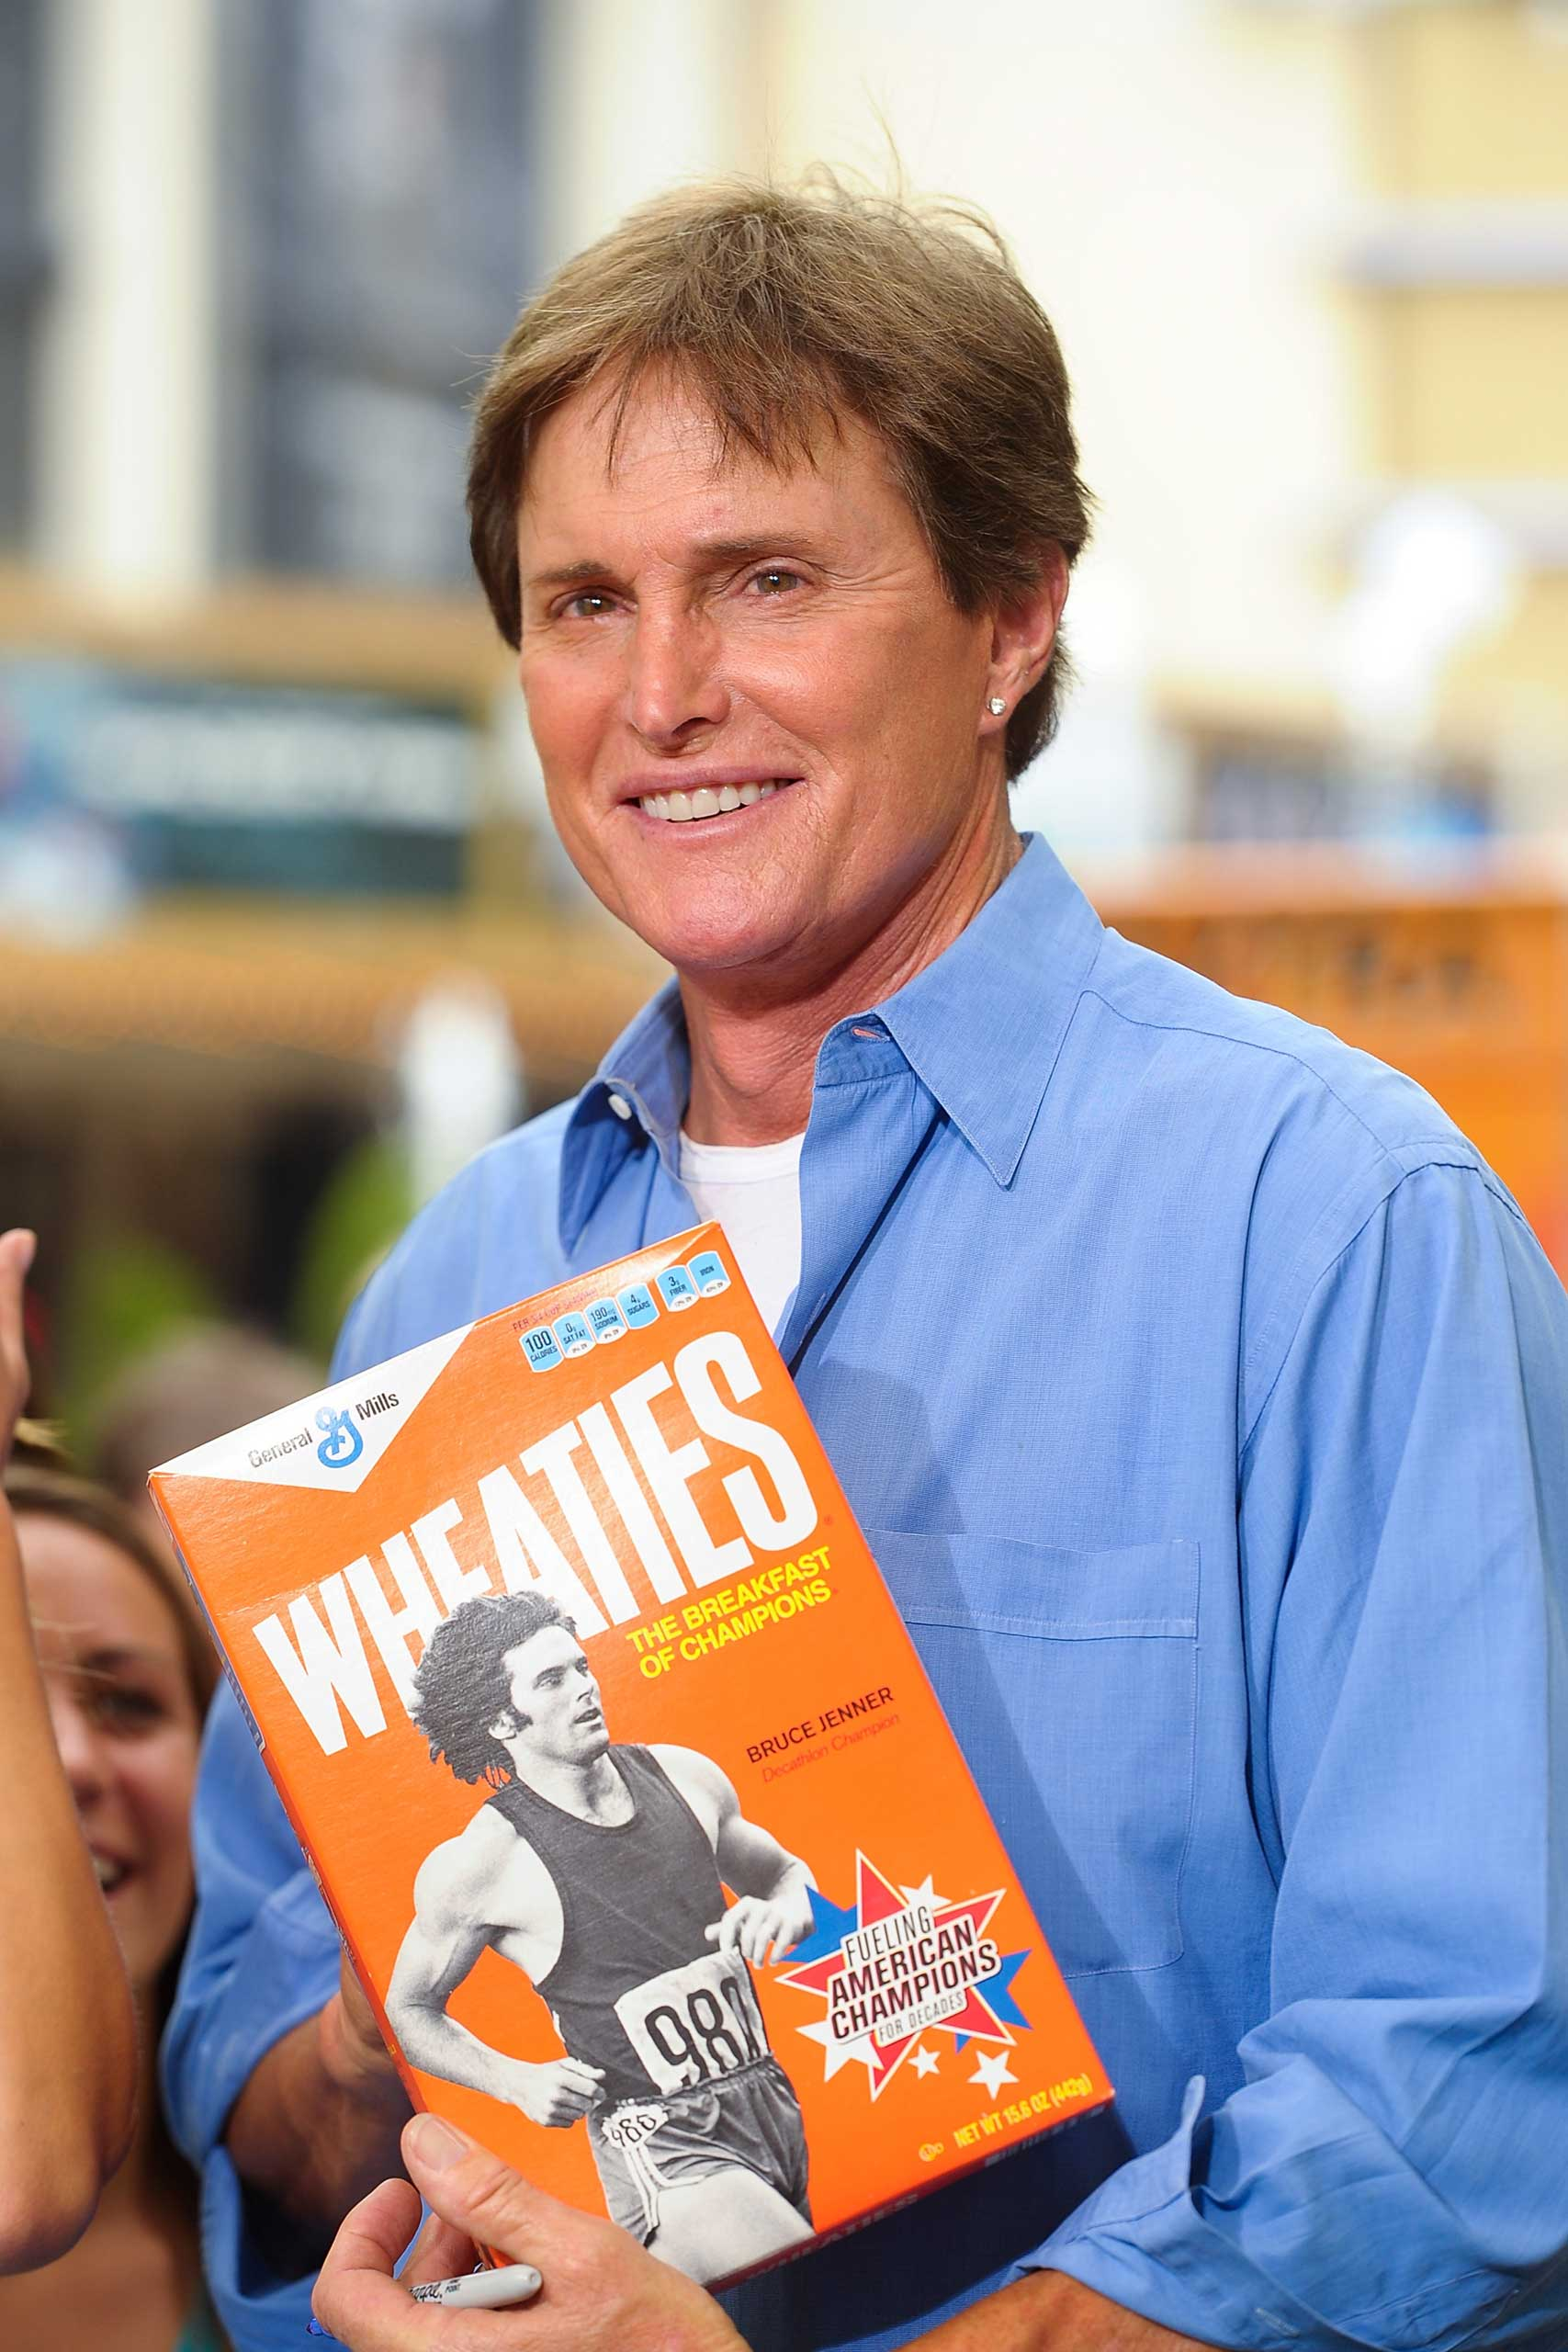 Jenner poses with a box of Wheaties in 2012. He appeared on the front of the box first in 1977 after his Olympic gold-medal win, then in 2012 when Wheaties rolled out a retro series.